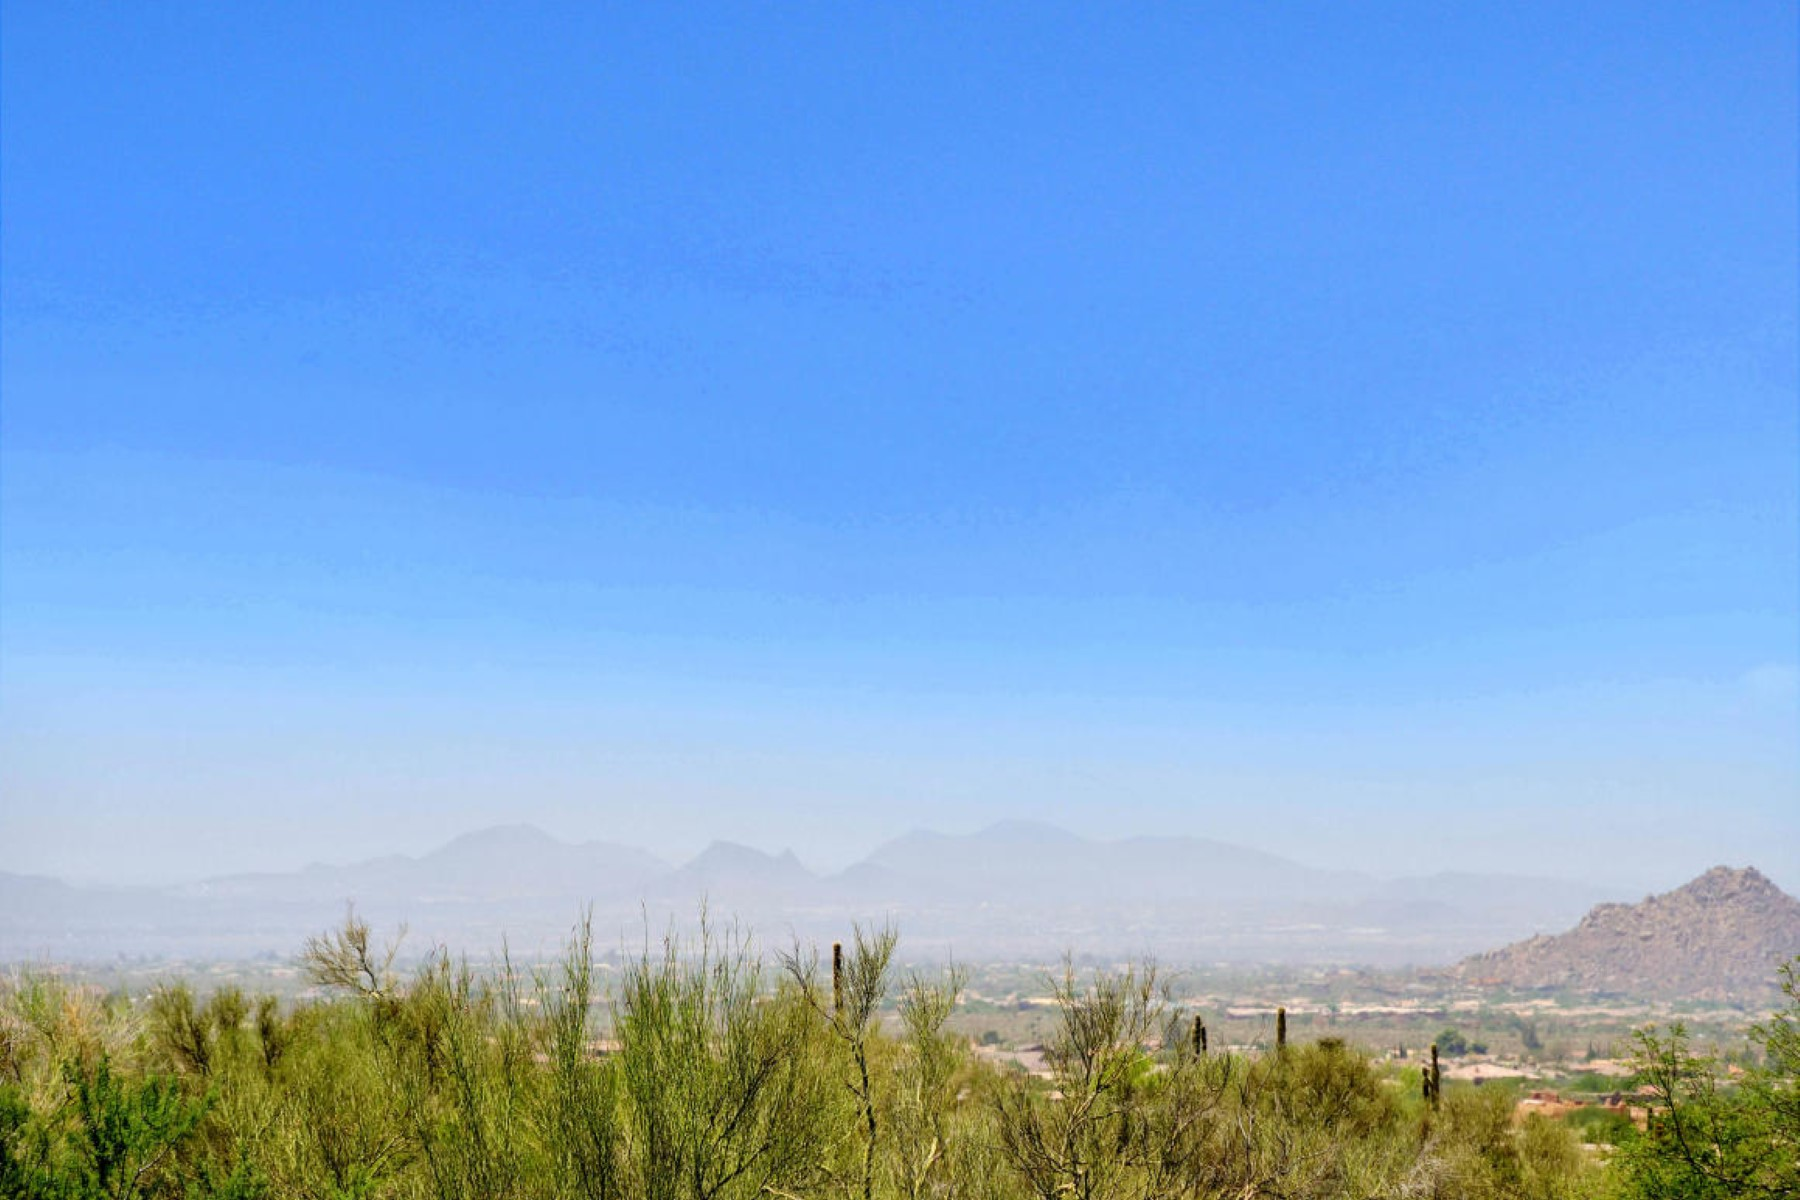 Land for Sale at Best city light views in Desert Mountain 39713 N 106TH PL #103 Scottsdale, Arizona 85262 United States